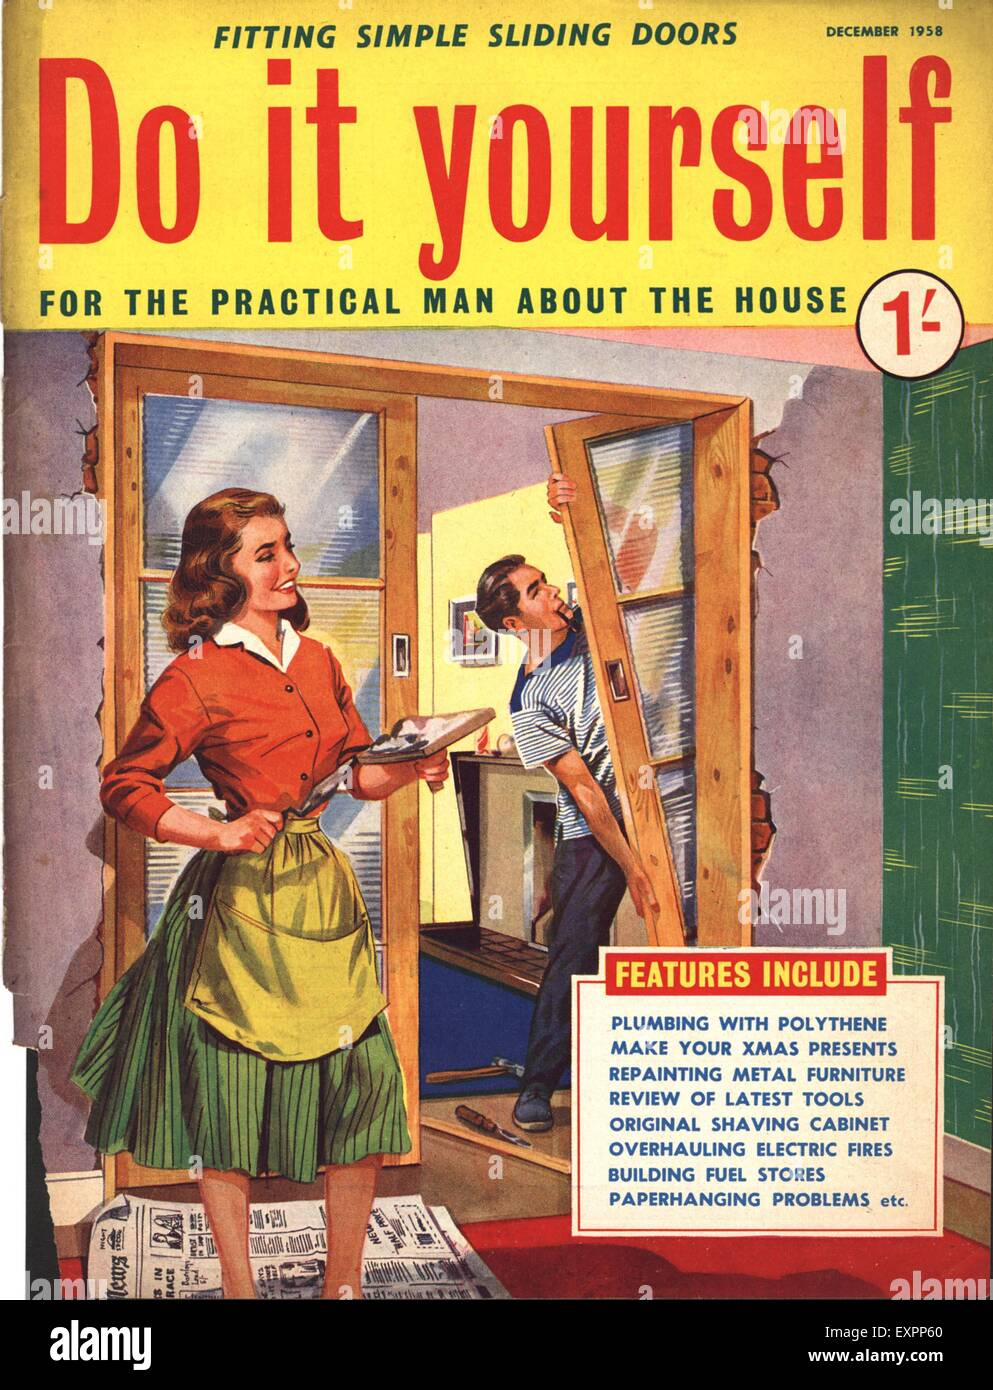 1950s uk do it yourself magazine cover stock photo 85322888 alamy 1950s uk do it yourself magazine cover solutioingenieria Images